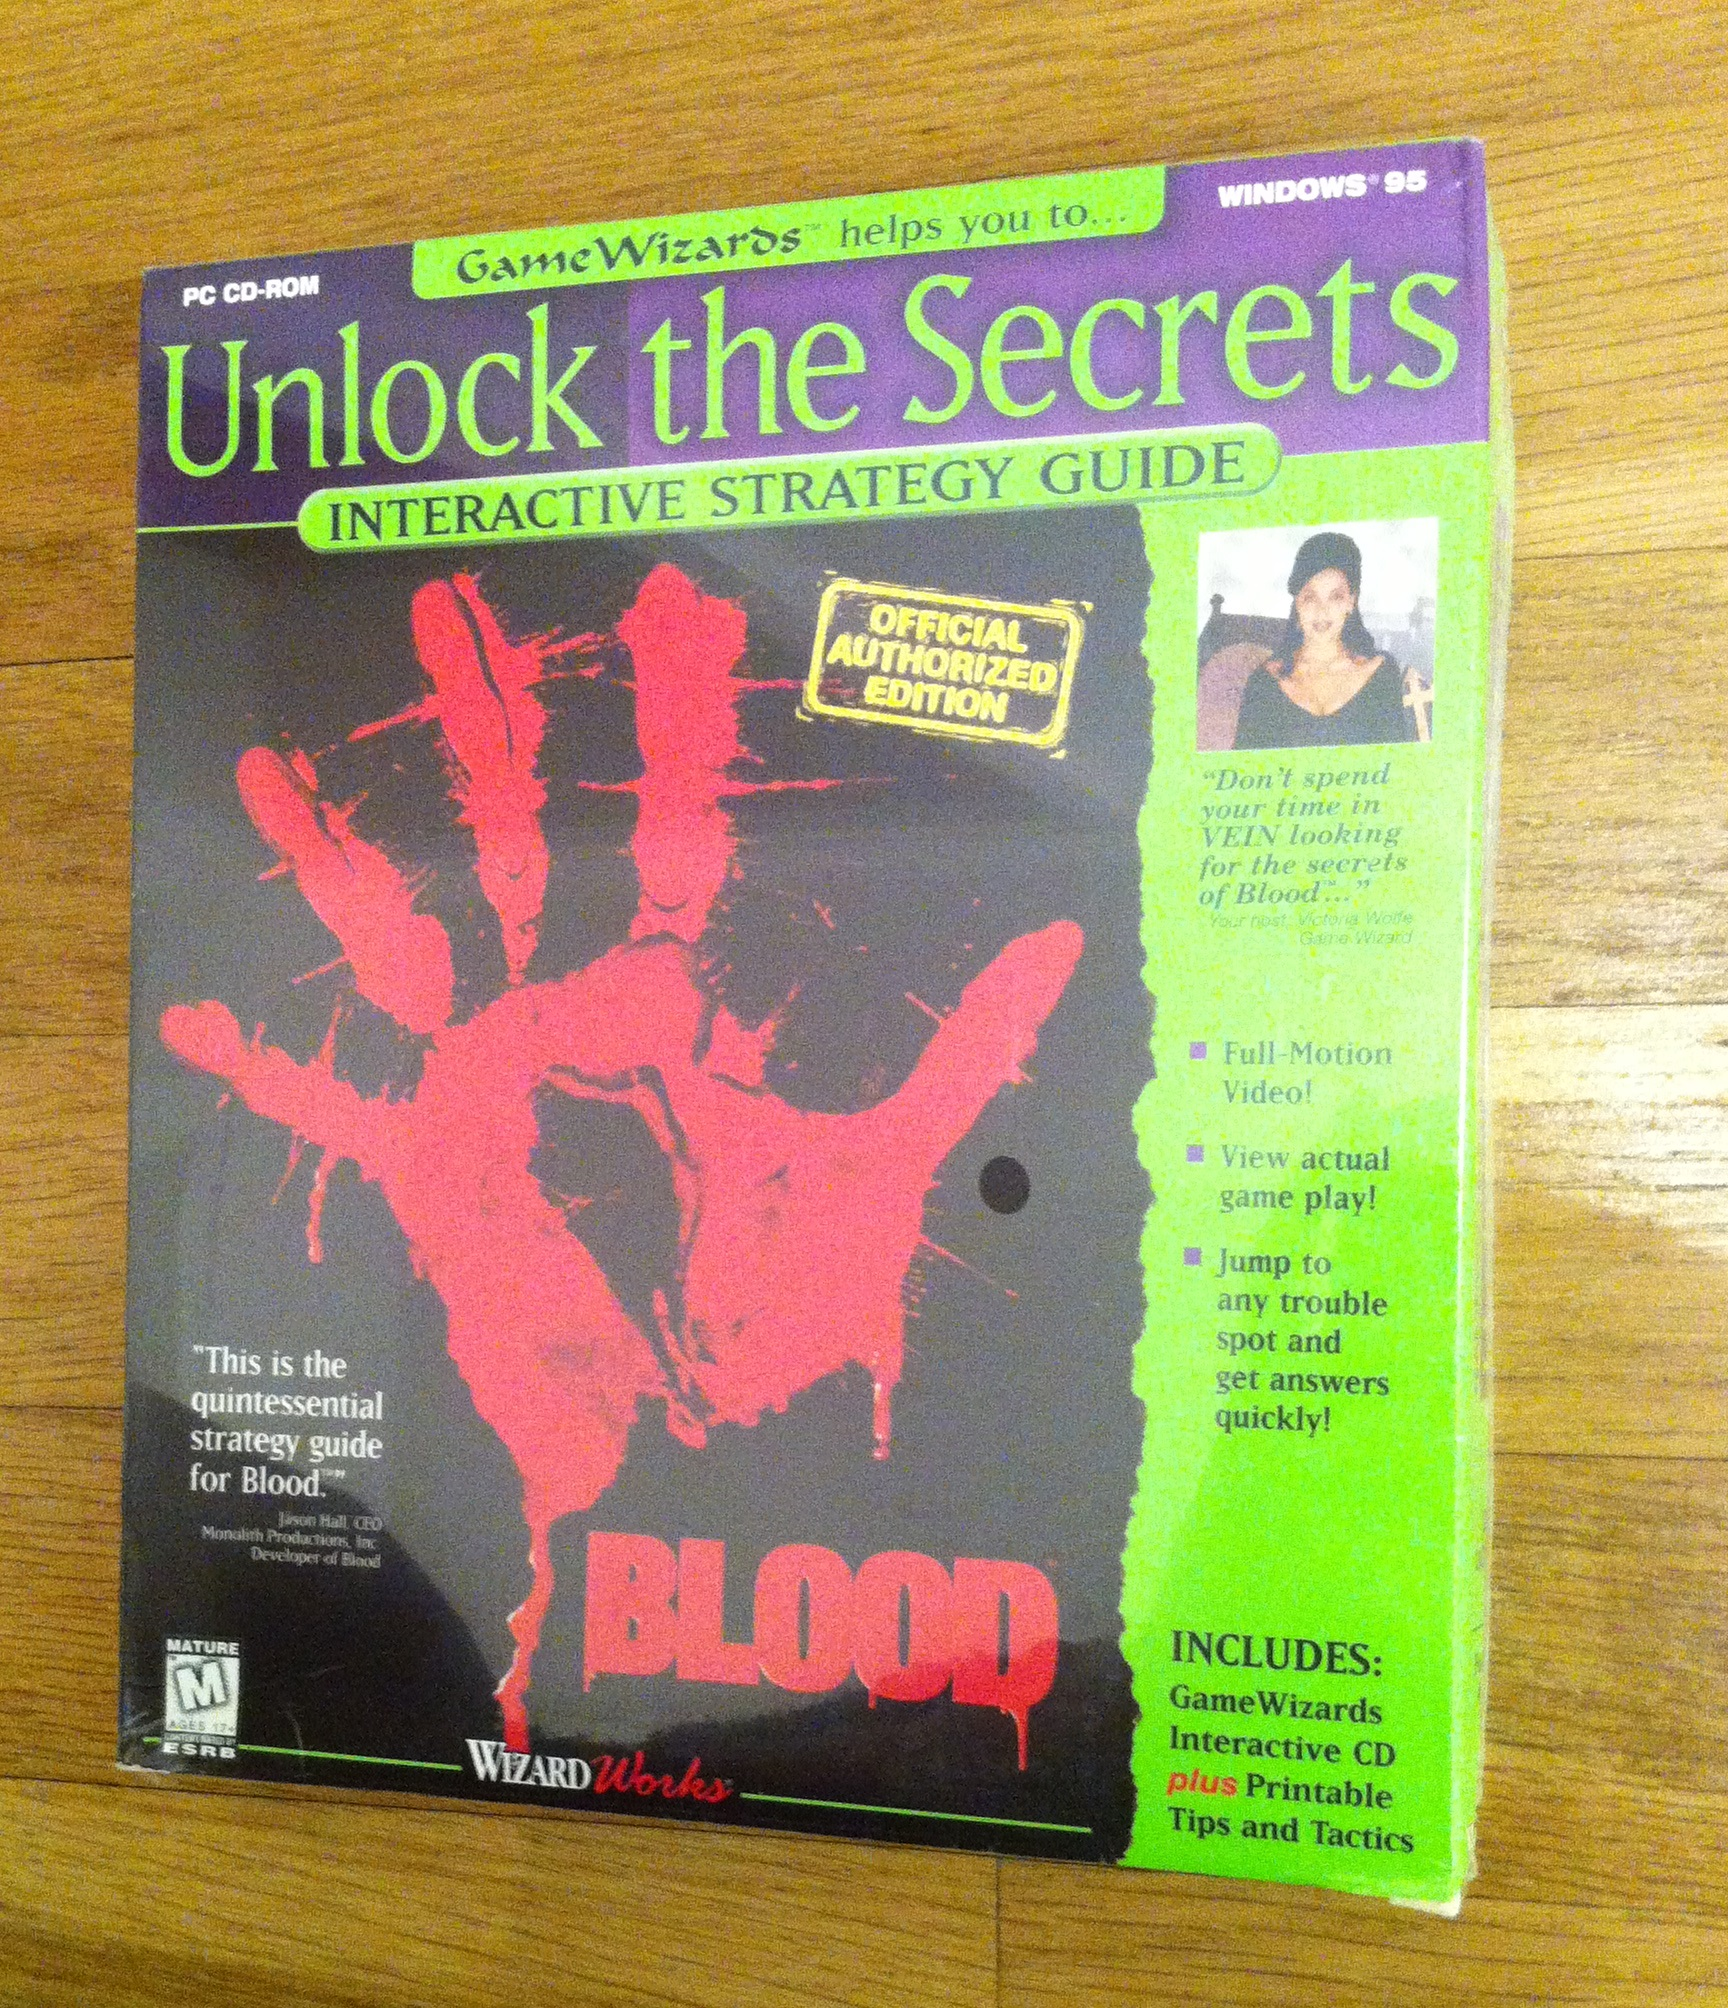 [Wertanfrage] Blood (1997) Monolith Productions in Big Box (UK) + Unlock The Secrets (Sealed)[Wertanfrage] Blood (1997) Monolith Productions in Big Box (UK) + Unlock The Secrets (Sealed)